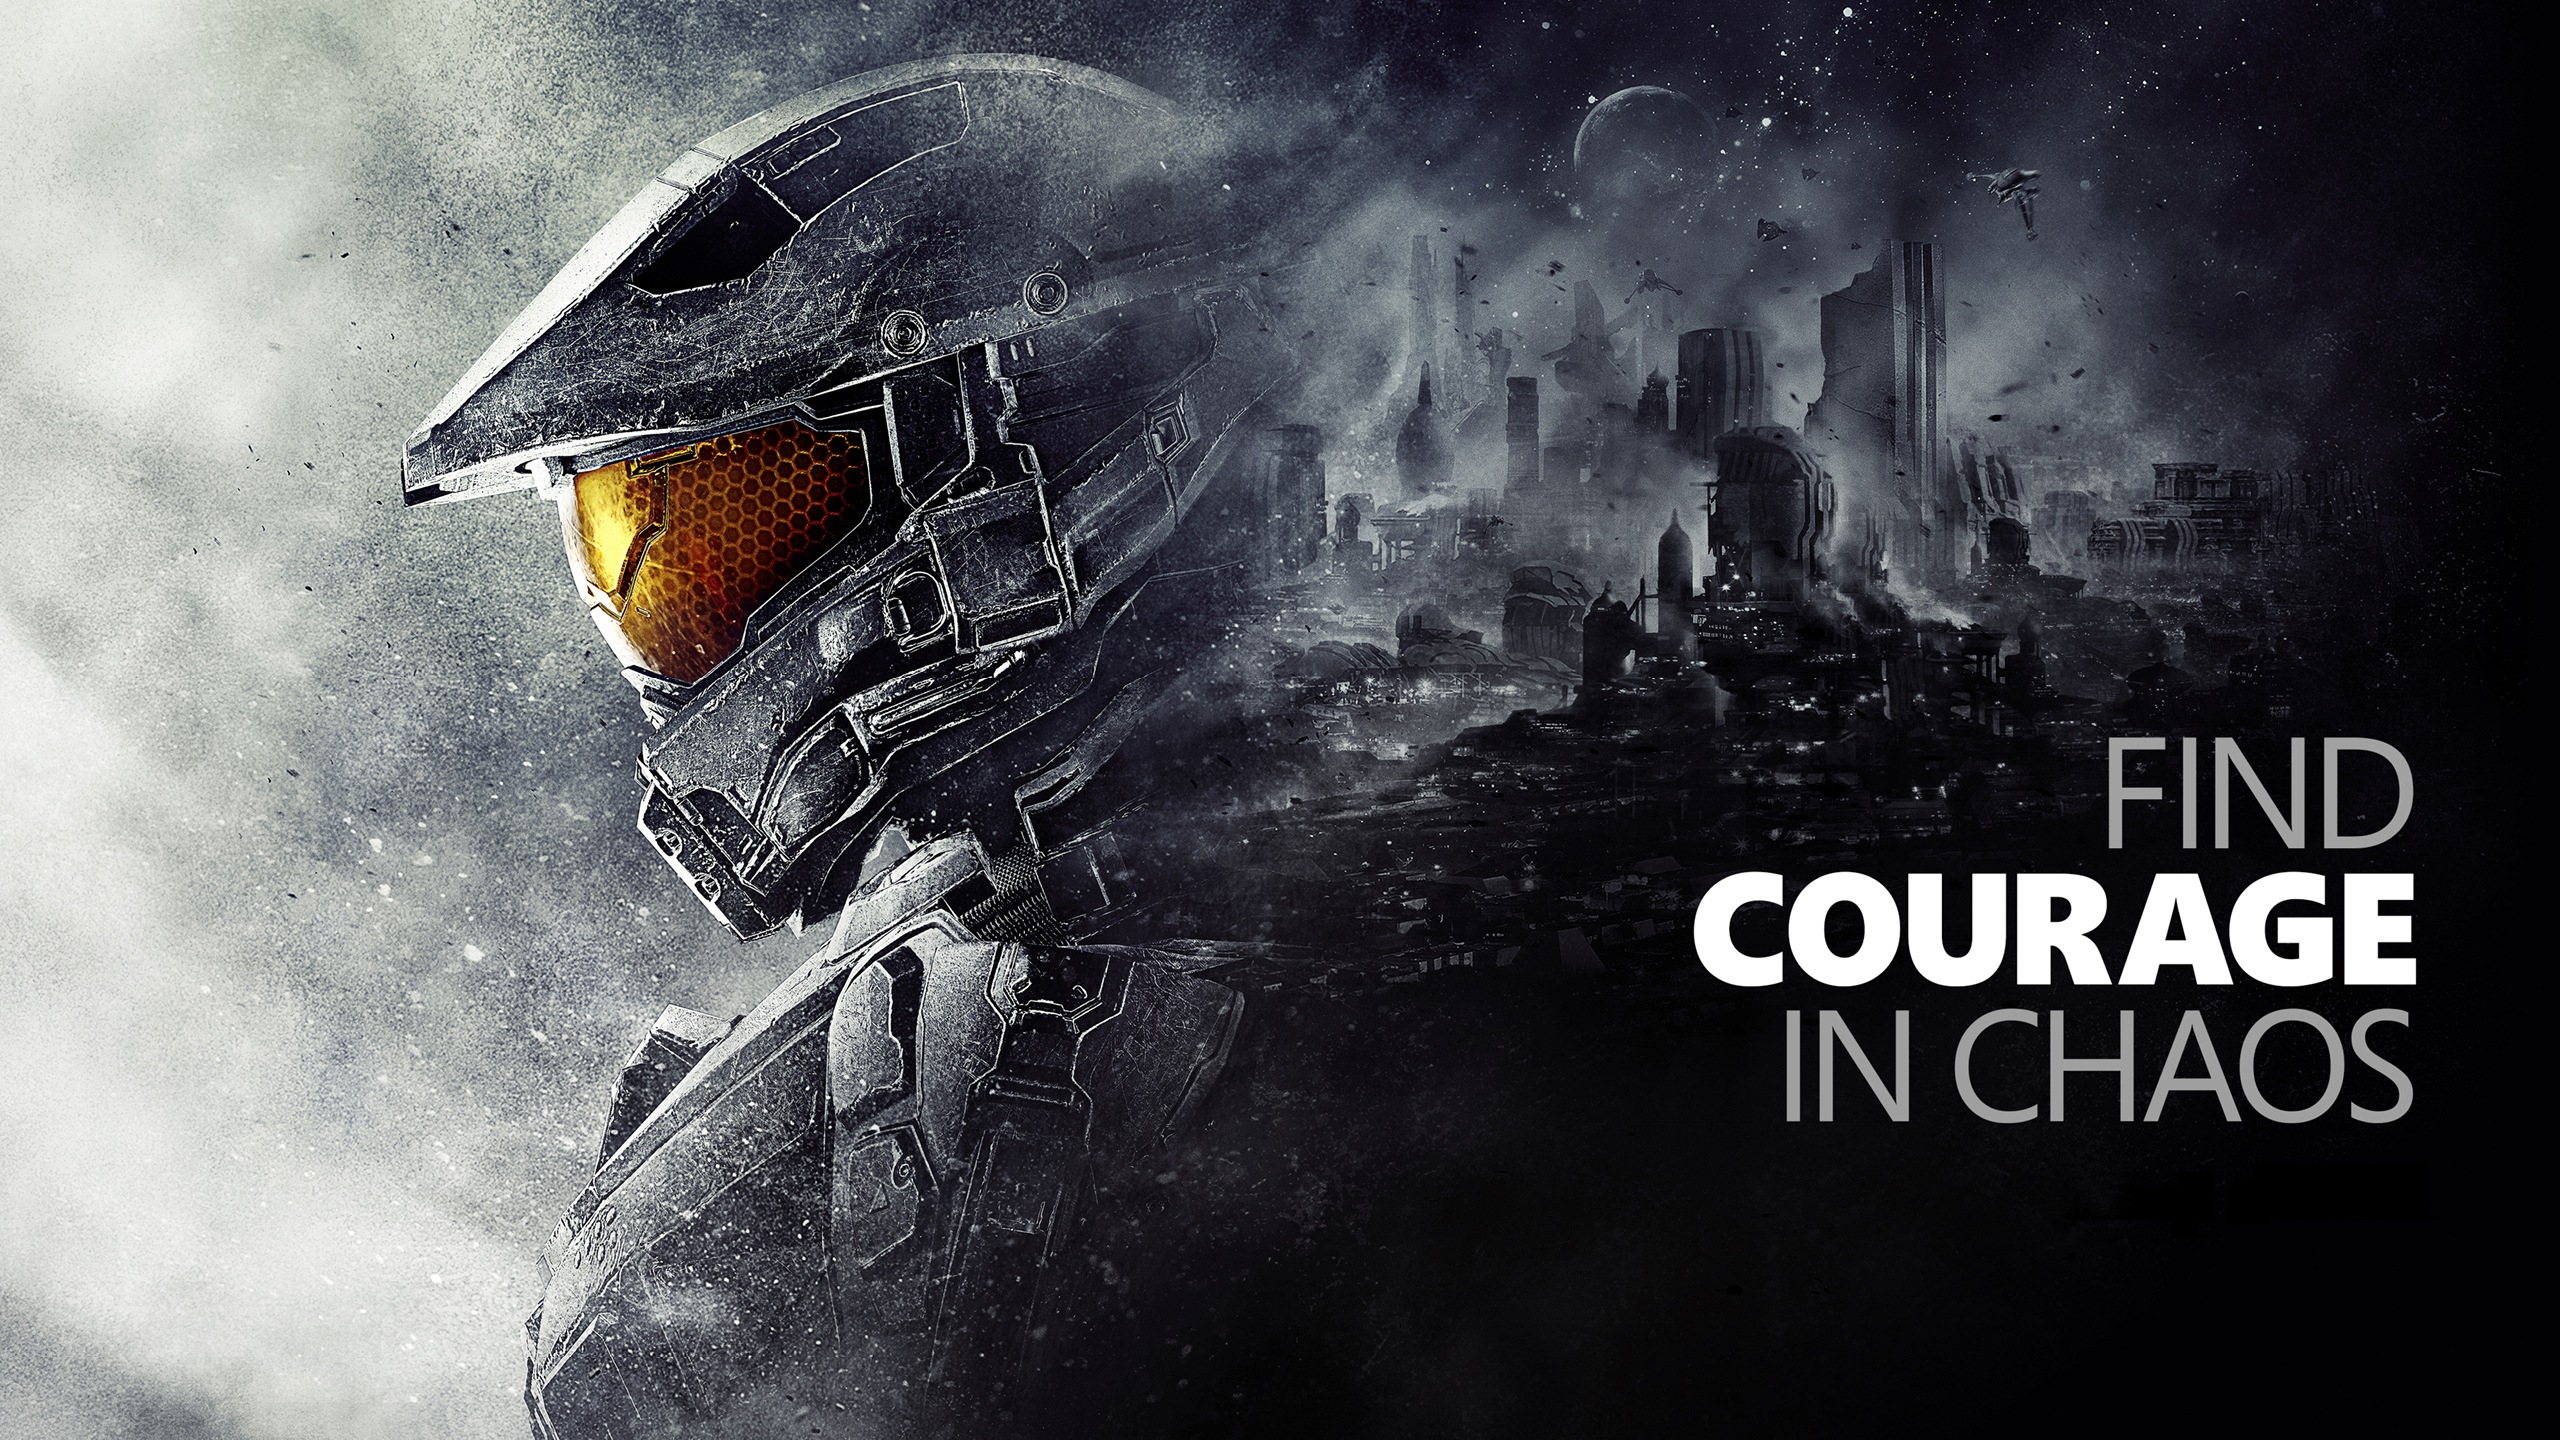 Find Courage Halo 5 Guardians wallpaper Best HD Wallpapers 2560x1440